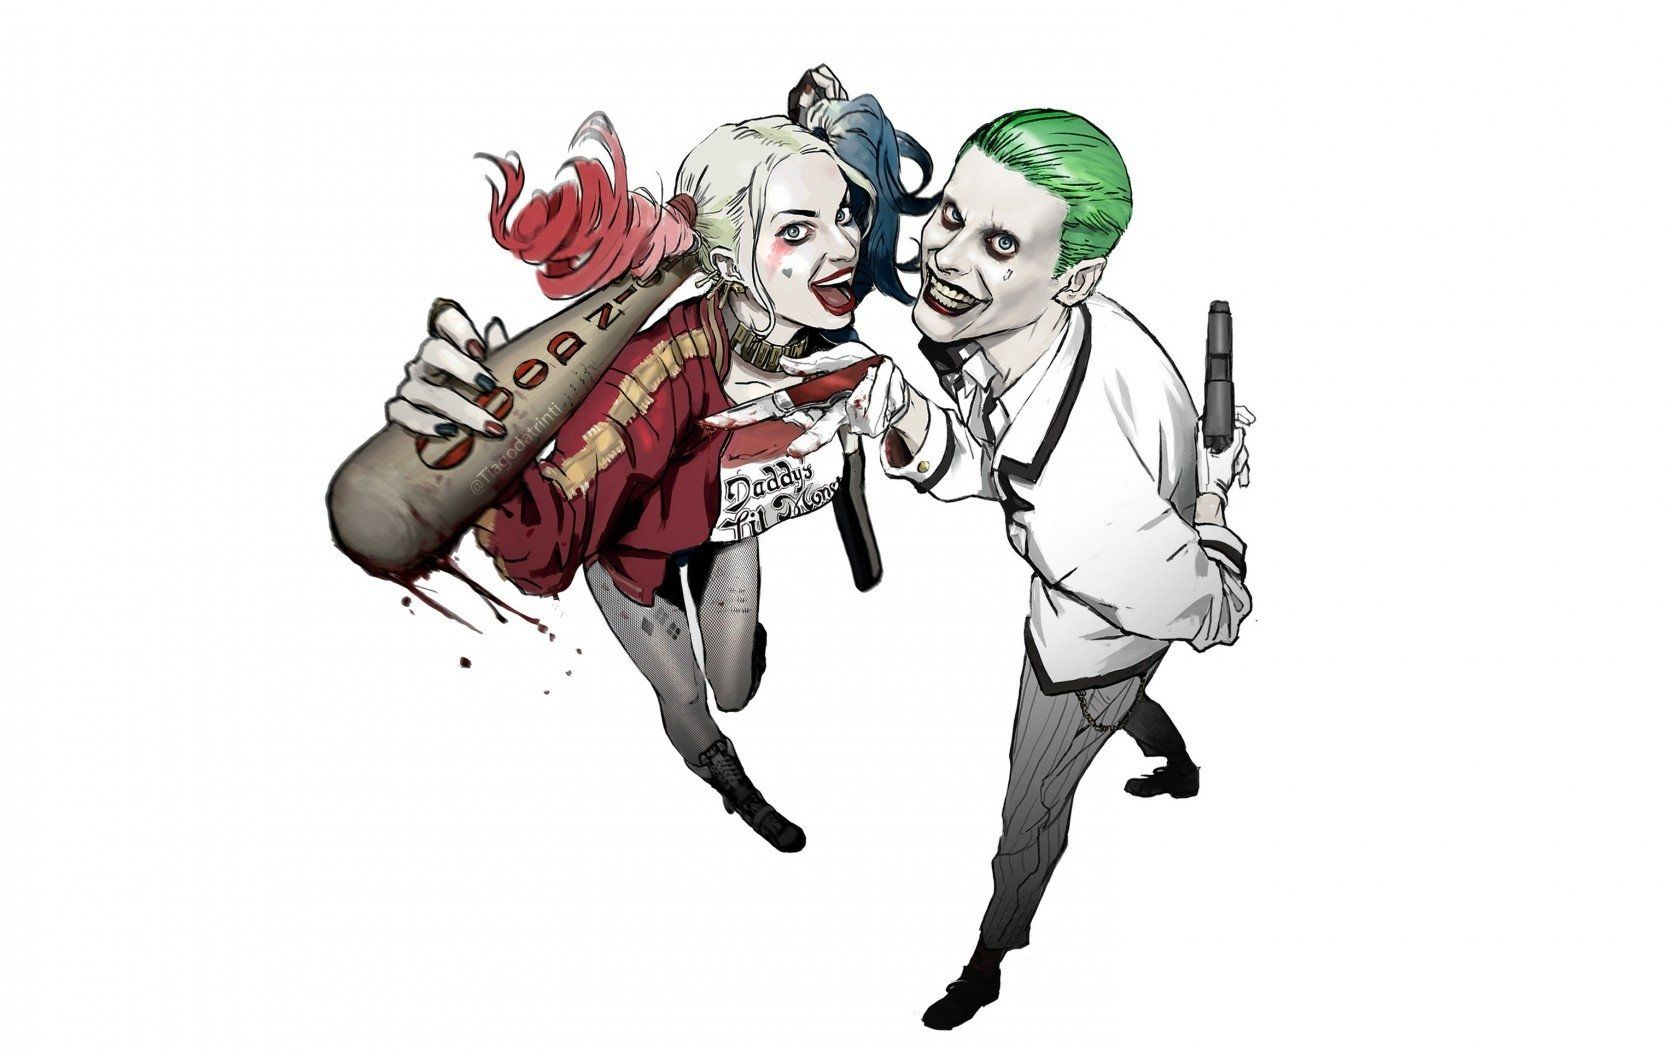 1680x1050 408 Harley Quinn HD Wallpapers | Background Images ...